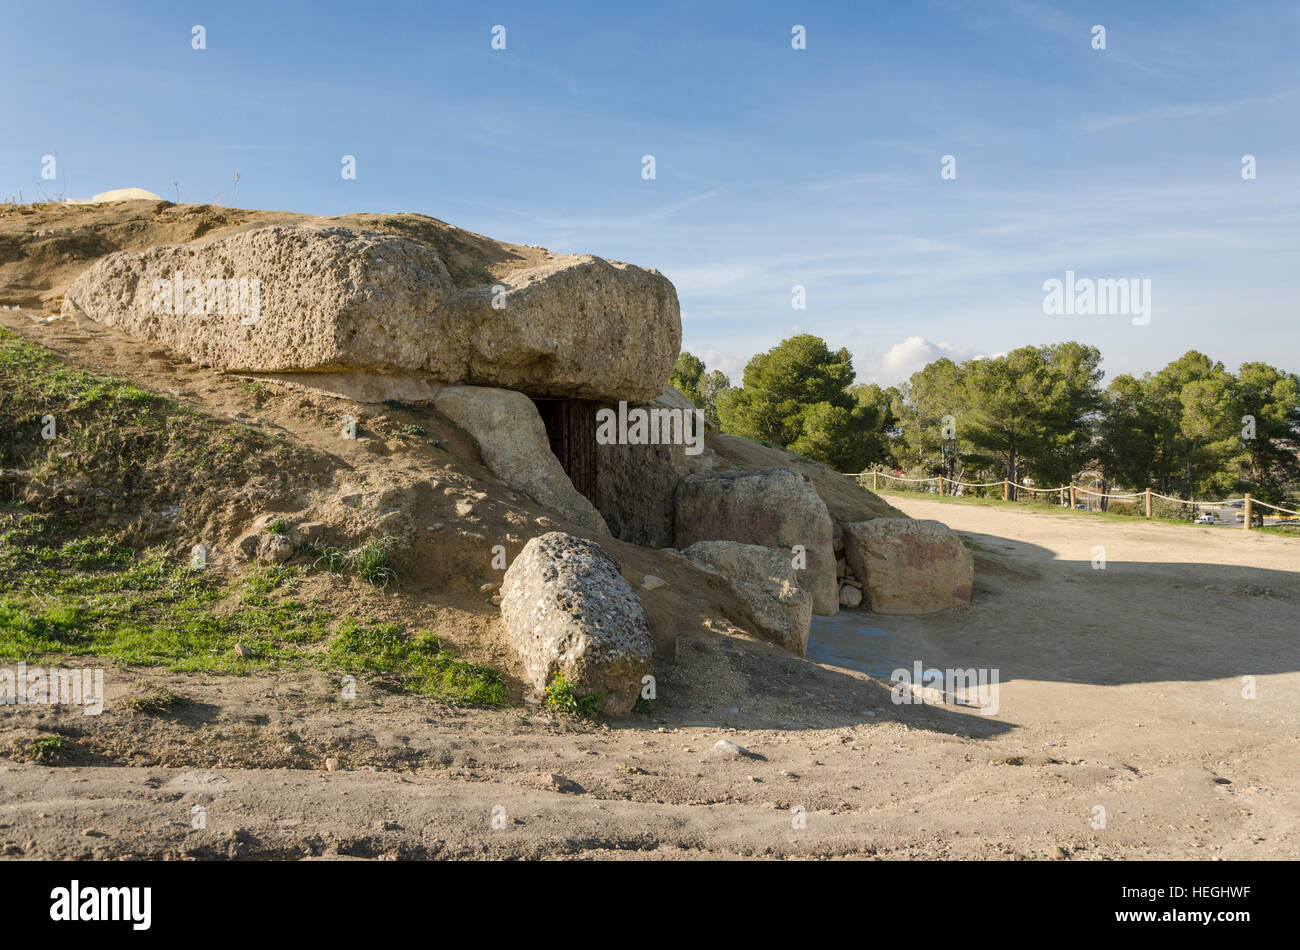 La Menga Dolmen, dolmens, prehistoric burial chambers, megalithic tombs, Antequera, Andalusia, Spain - Stock Image